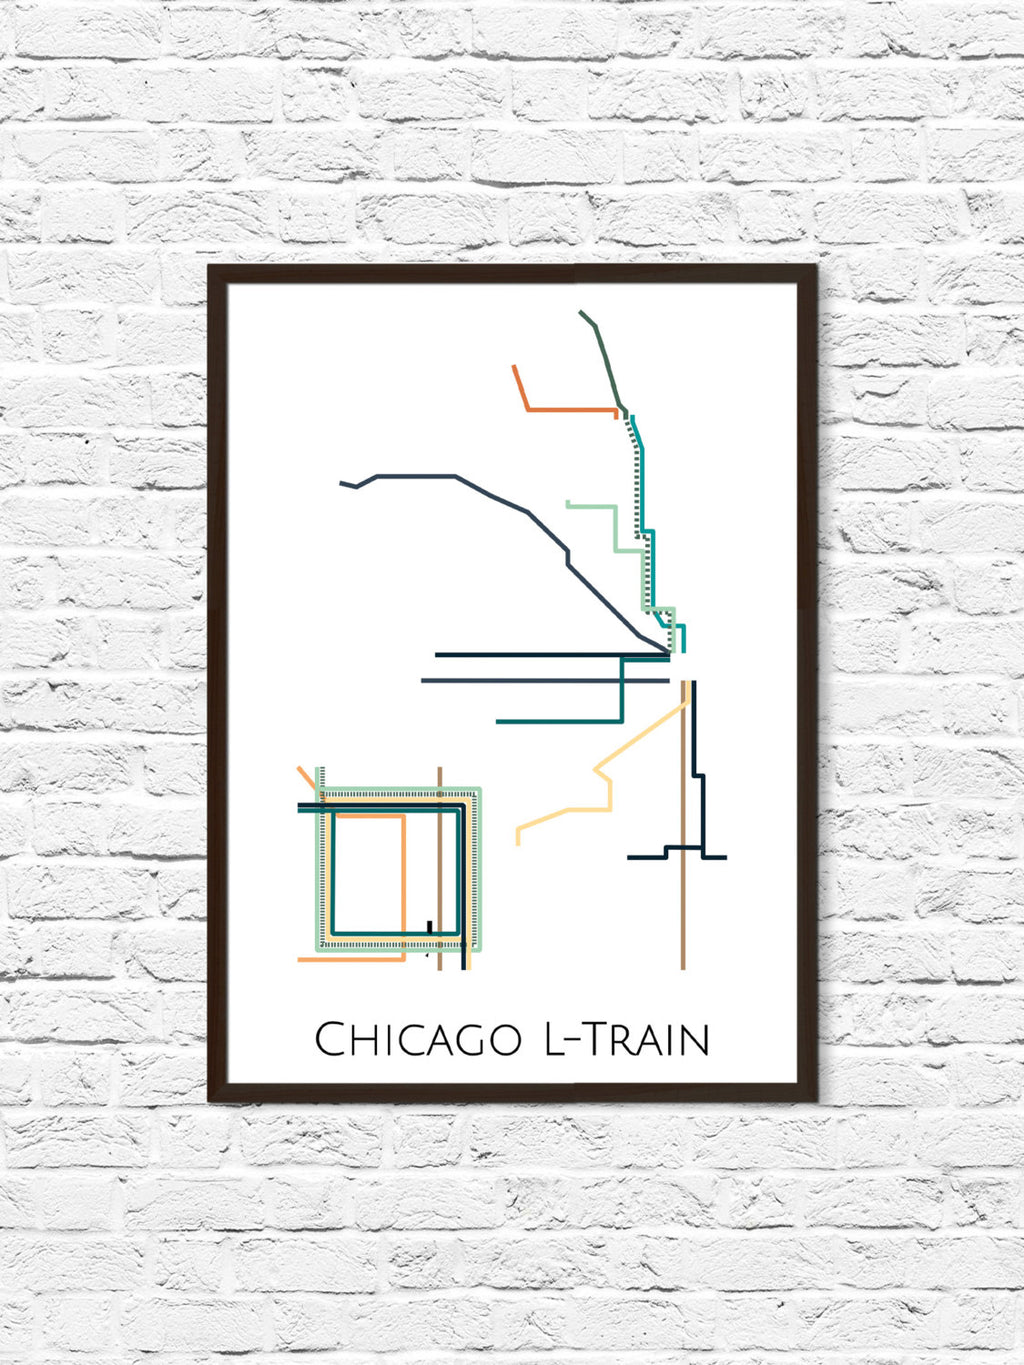 Chicago L-Train Metro Map - ParMar Media